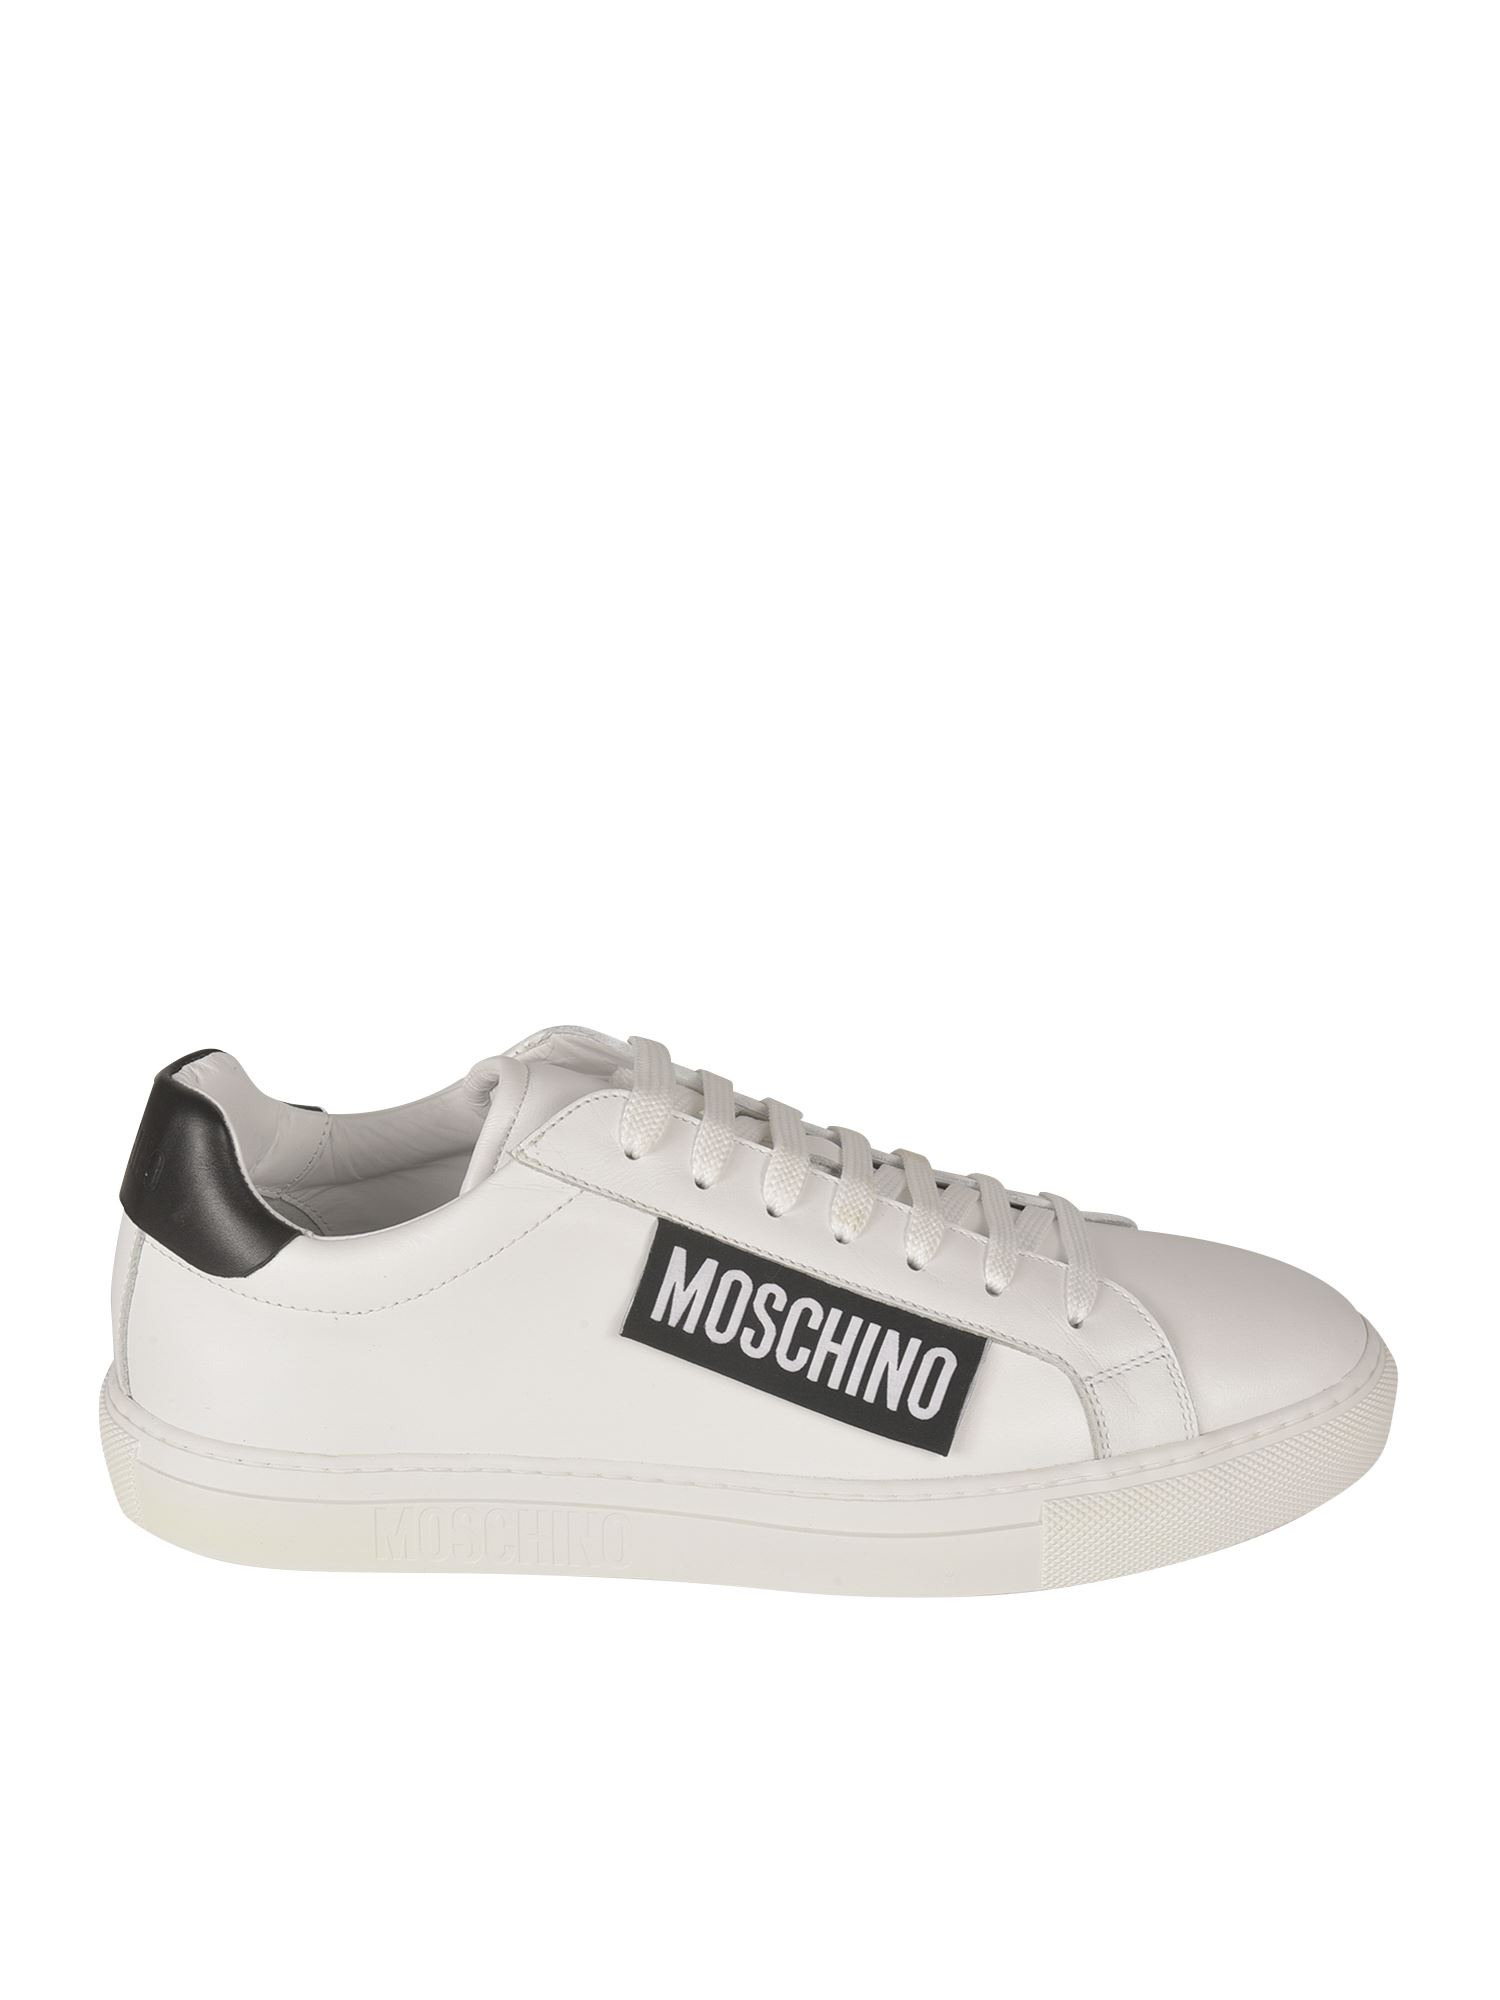 Moschino LOGO LABEL SNEAKERS IN WHITE AND BLACK